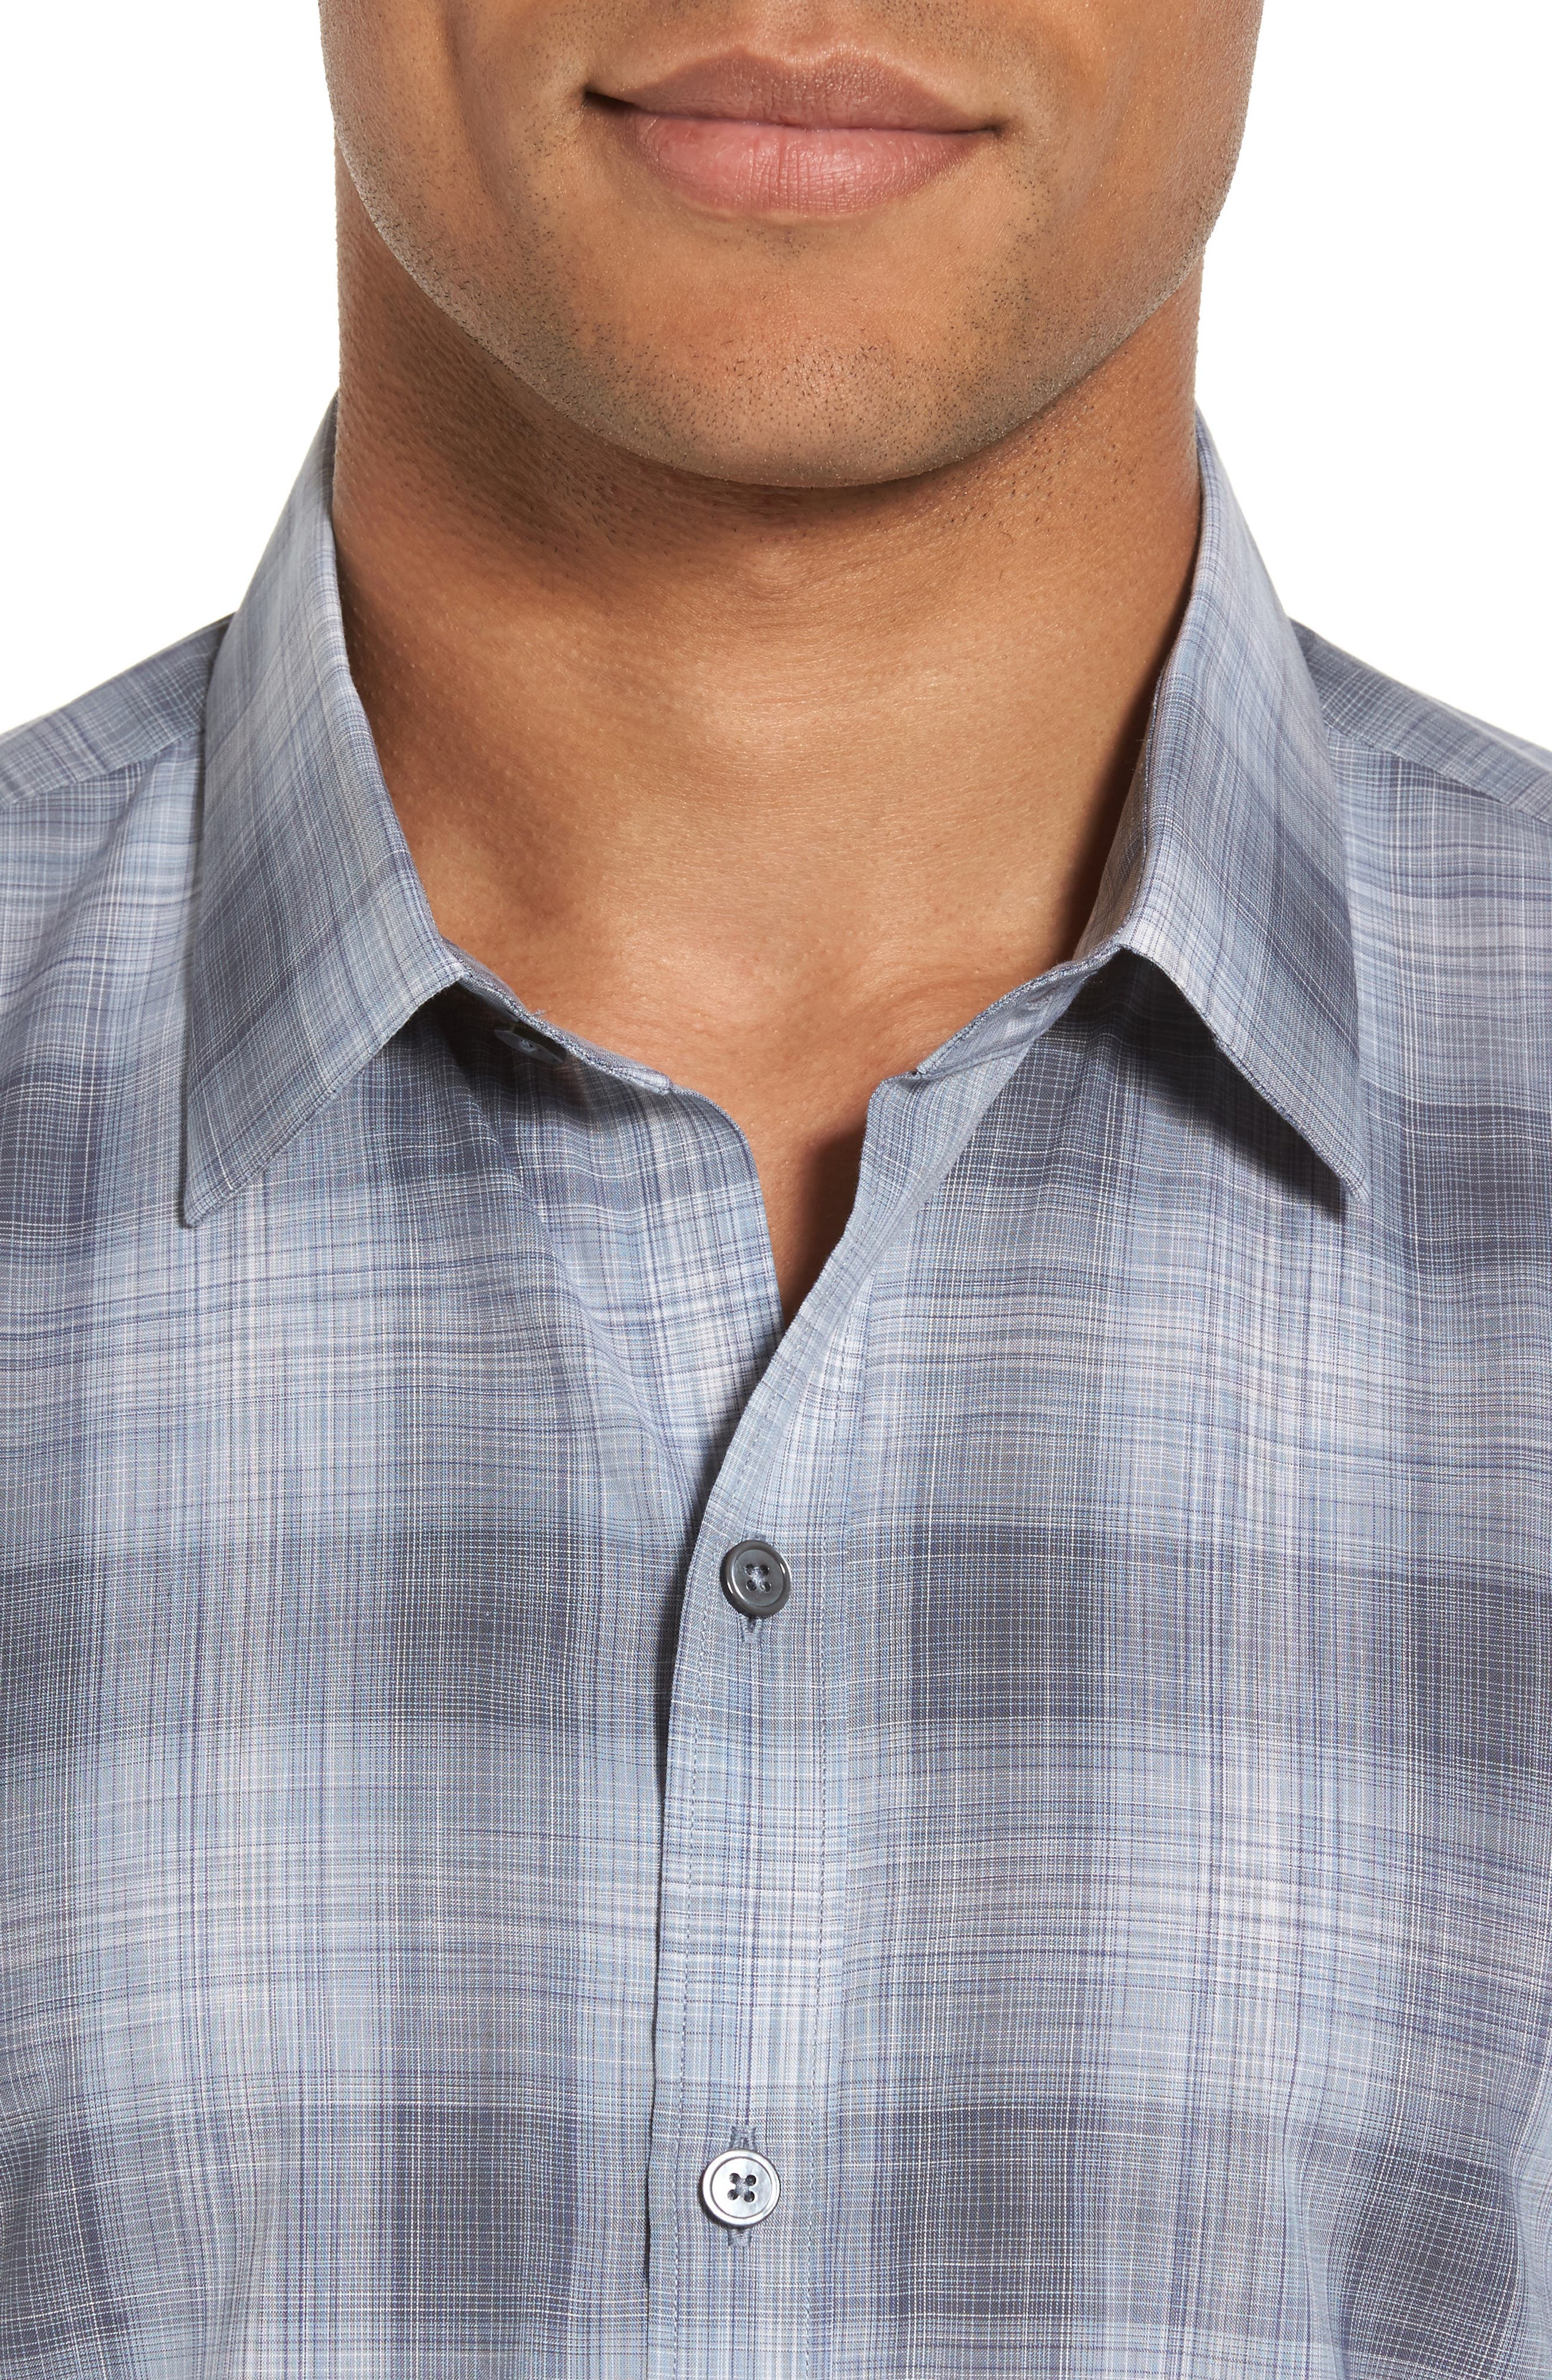 Perrygold Slim Fit Check Sport Shirt,                             Alternate thumbnail 4, color,                             Grey